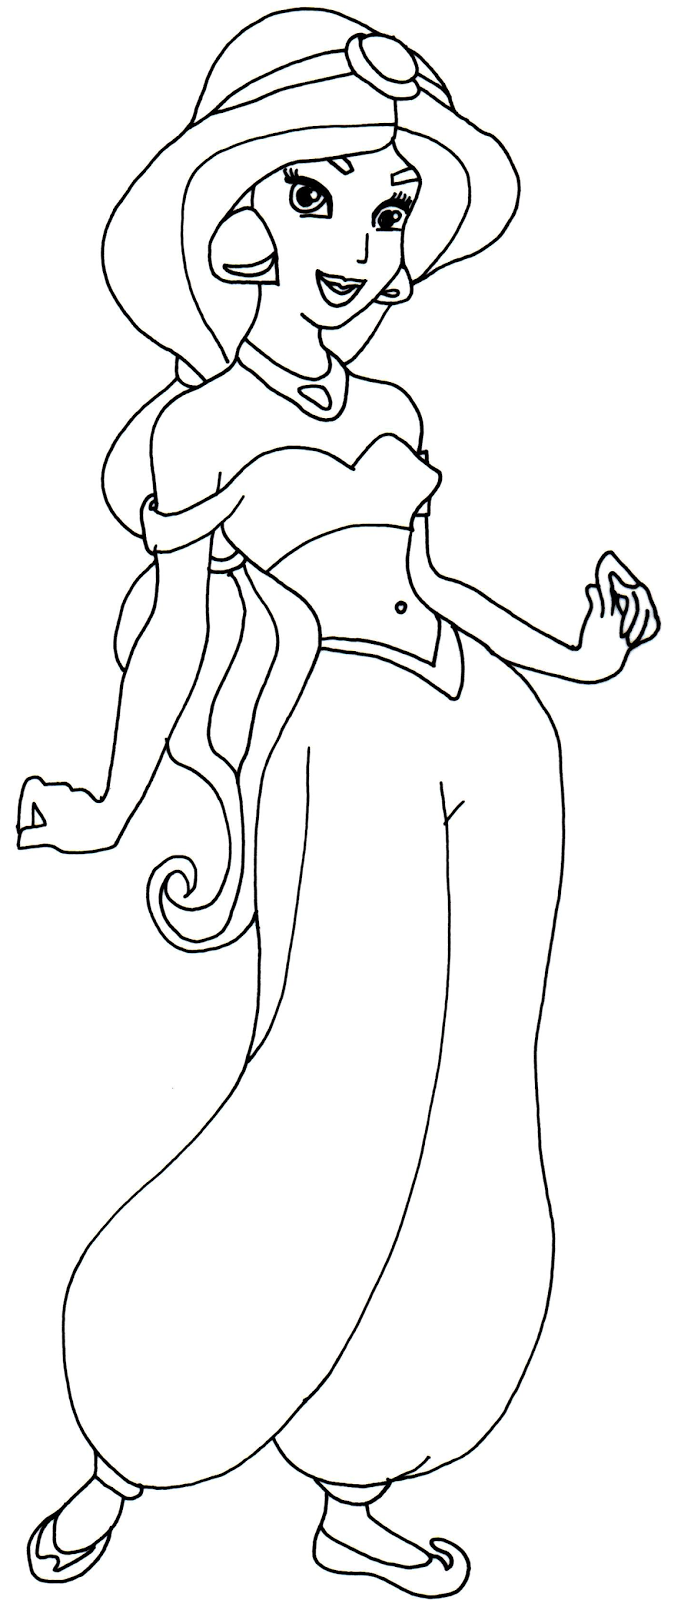 sofia the first coloring pages princess jasmine sofia